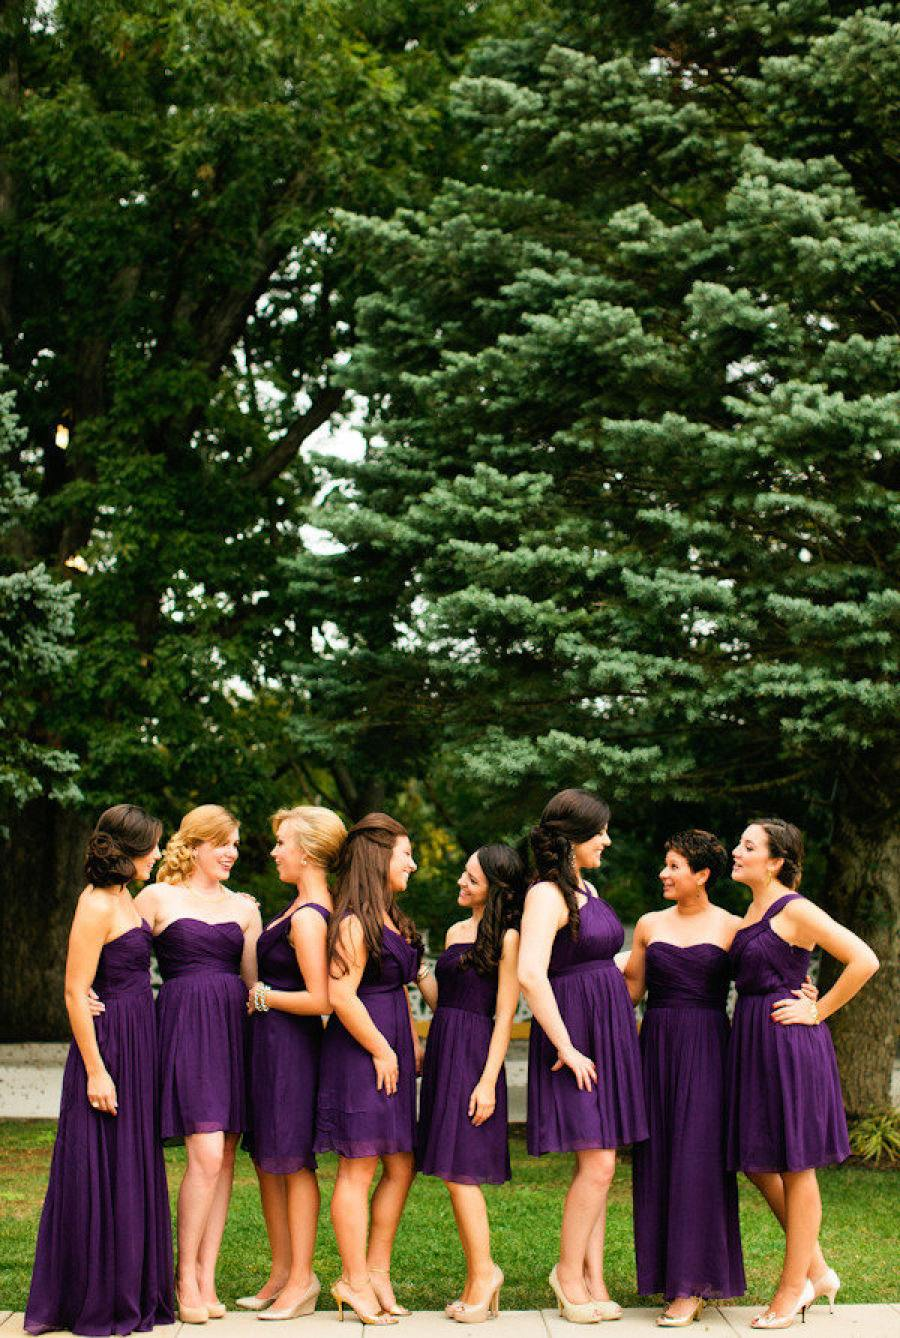 15 most popular bridesmaid dresses from j crew modwedding bridesmaid dresses 13 03172015 ky featured dresses j crew ombrellifo Images